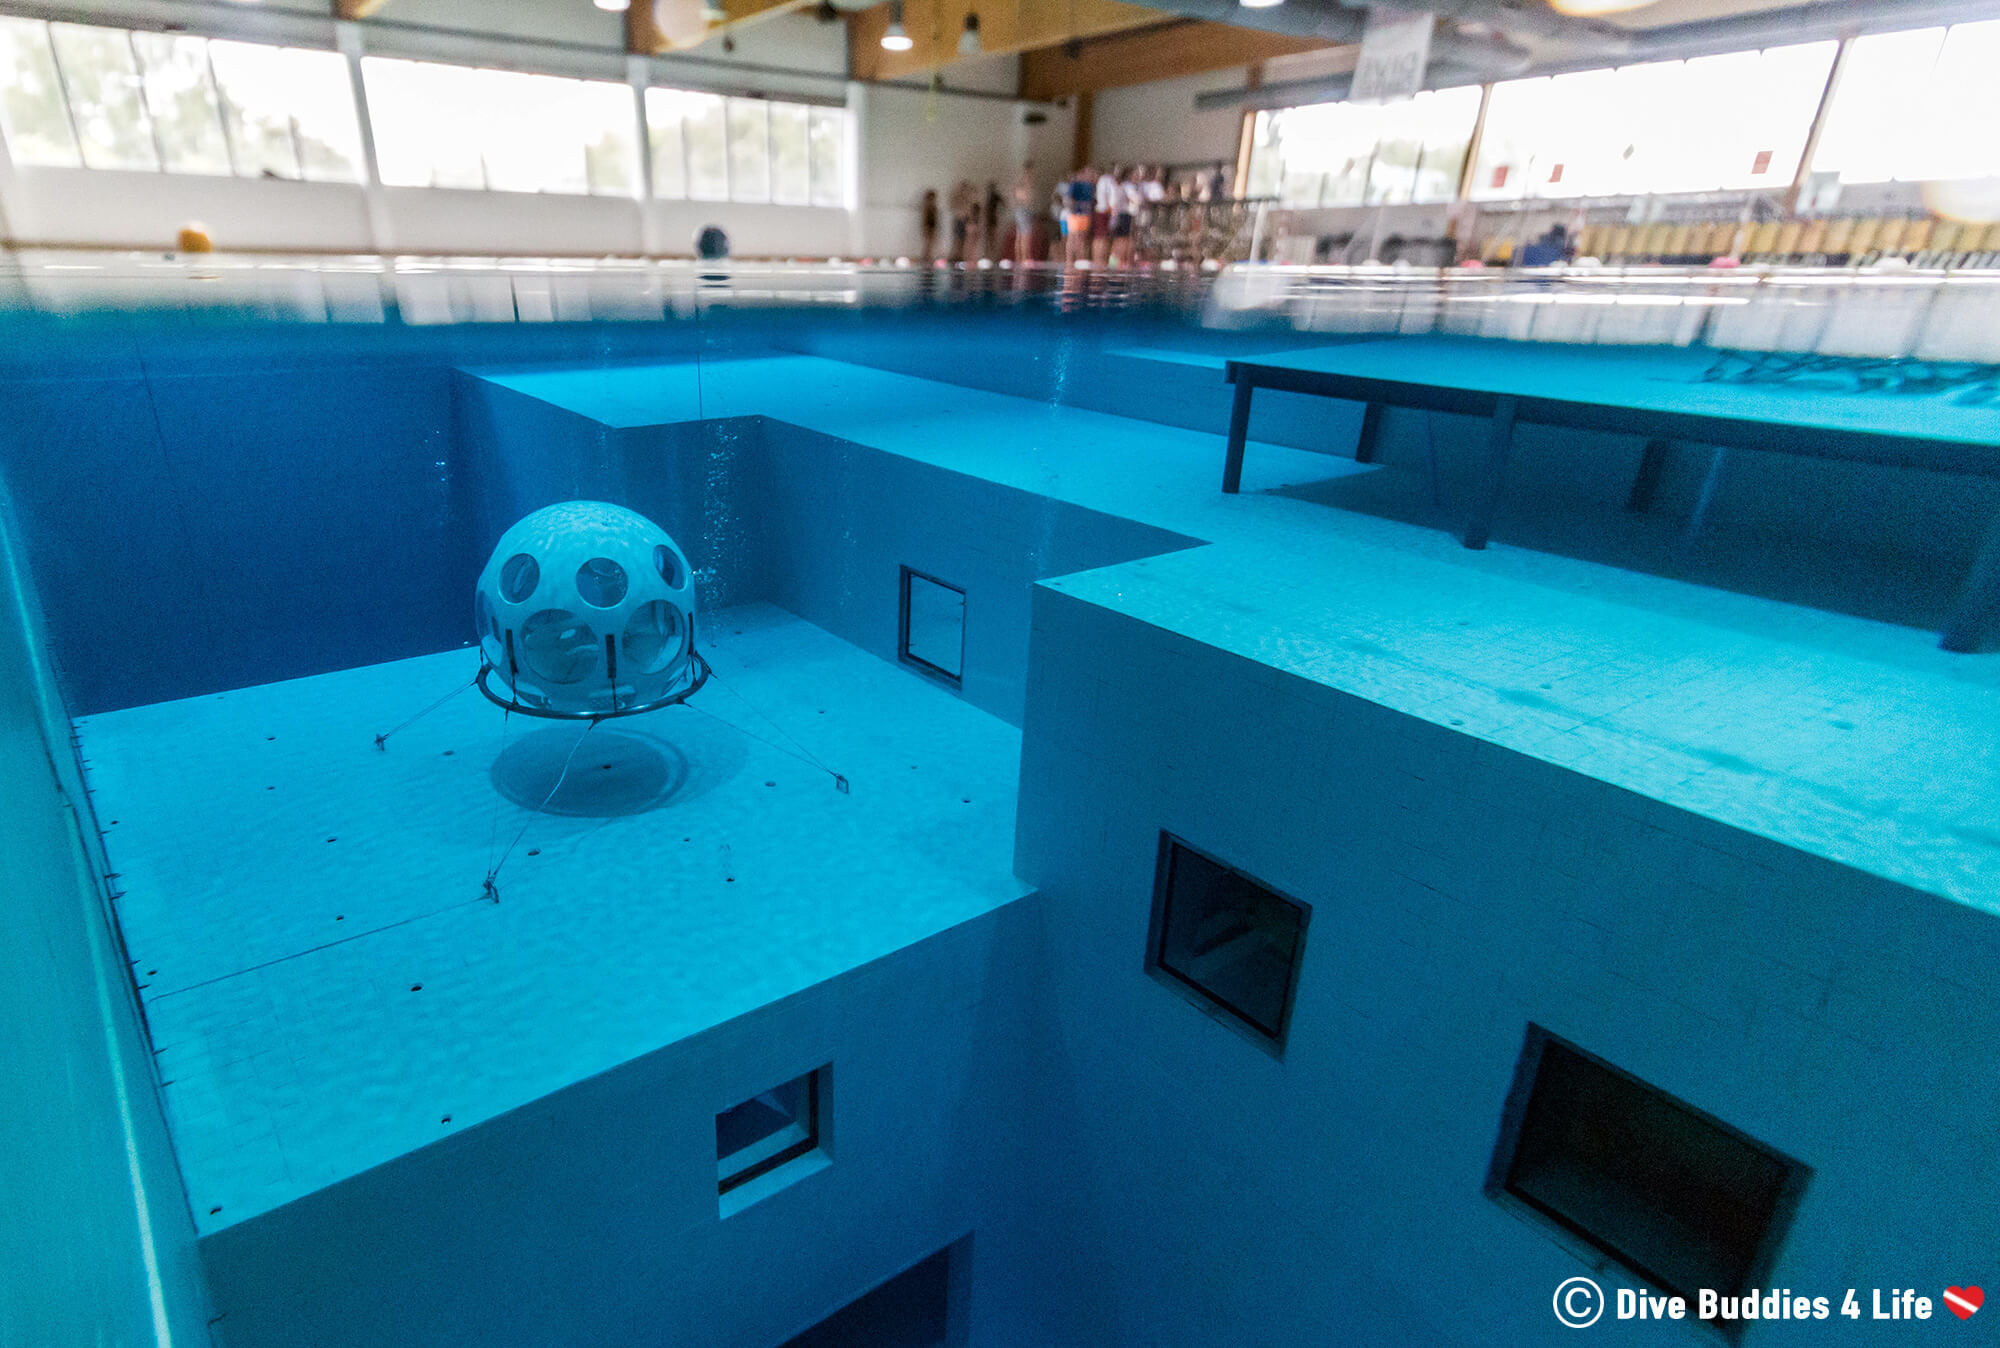 A New Group Of Divers Getting Ready To Dive The Nemo 33 Second Deepest Indoor Pool In The World, Belgium, Europe